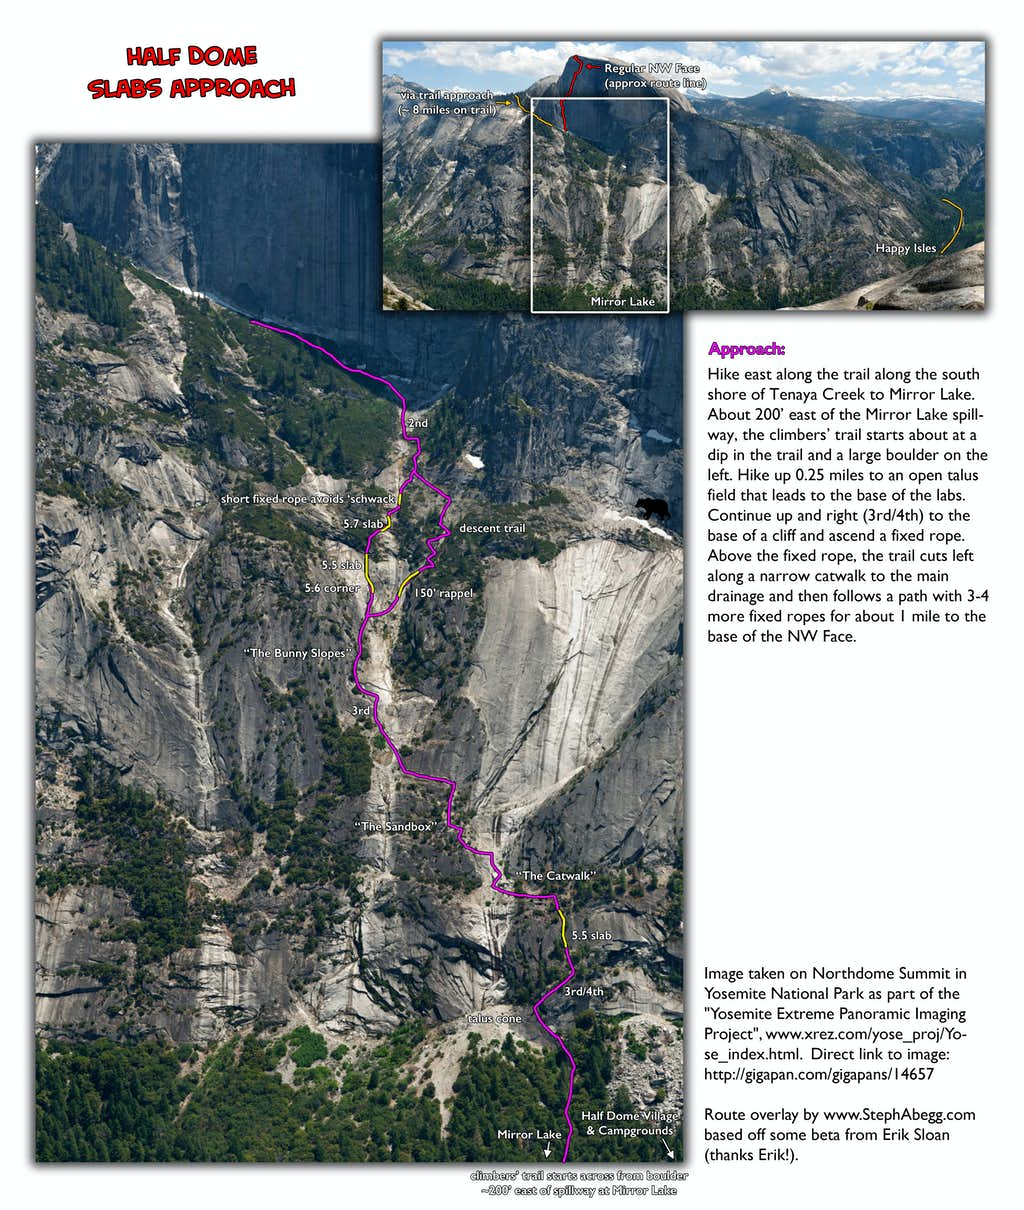 Route Overlay Slabs approach Half Dome